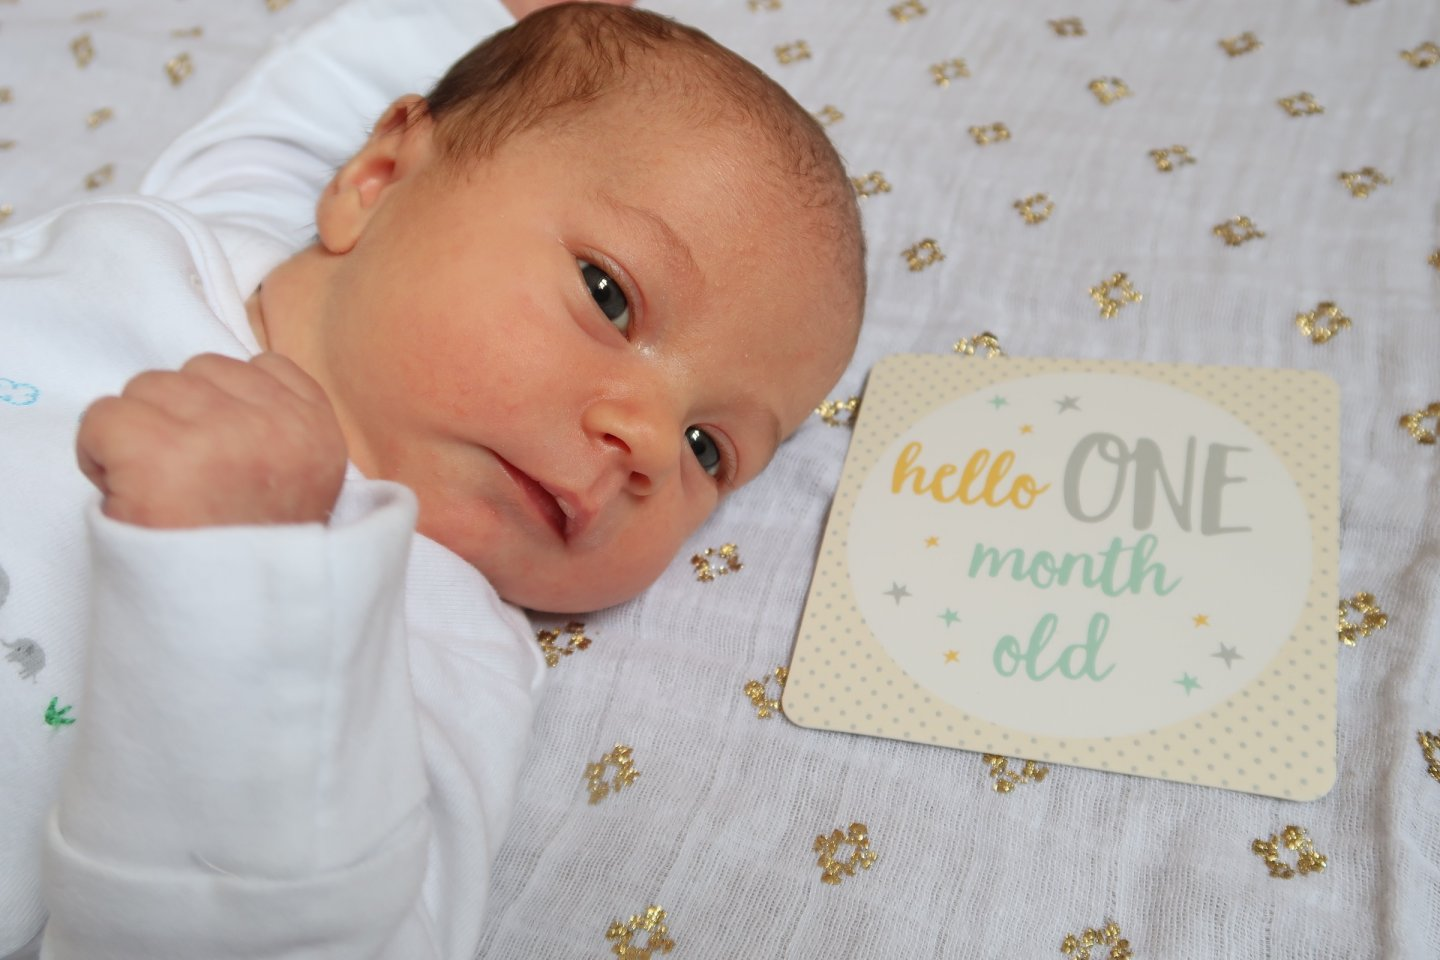 B at one month old